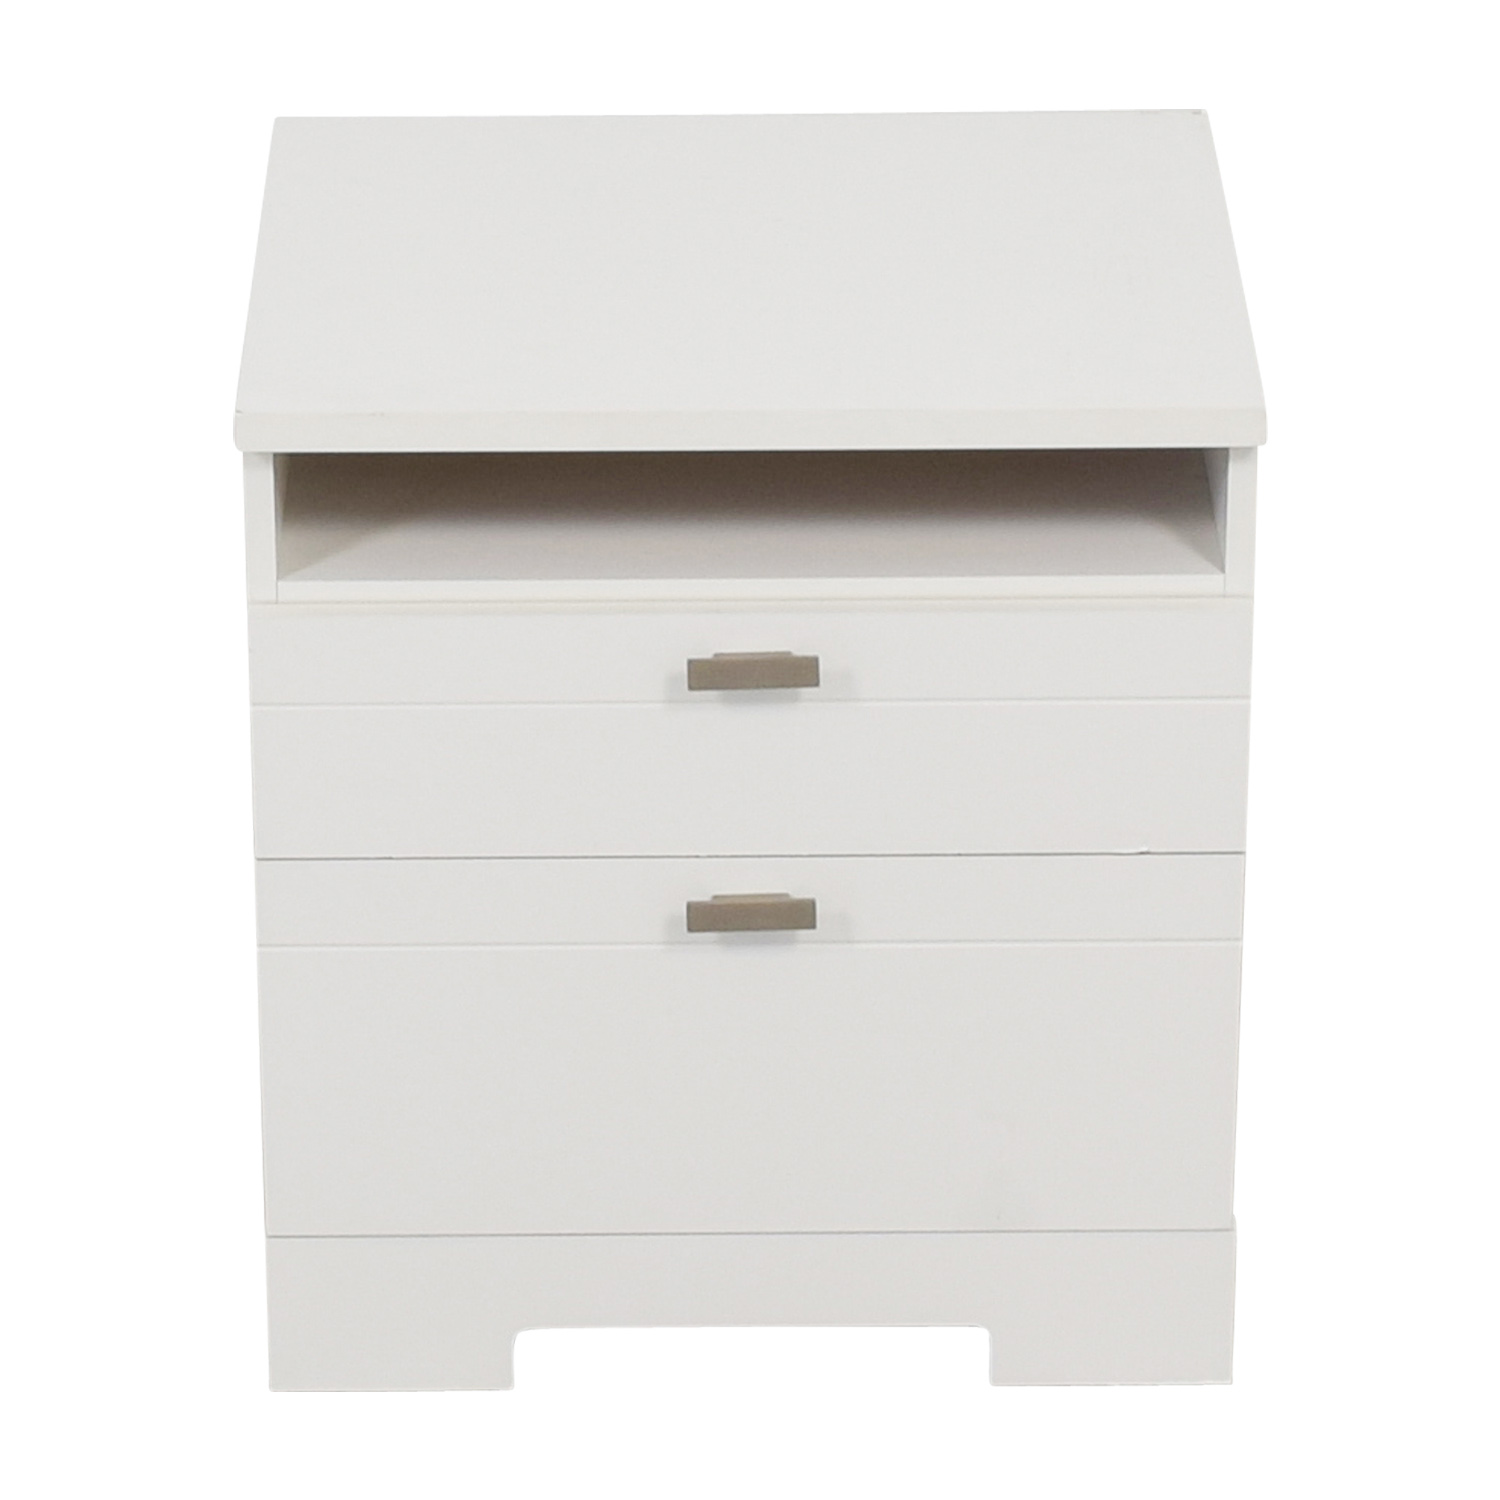 South Shore Reevo South Shore Reevo White Two-Drawer Nightstand with Cord Catcher End Tables